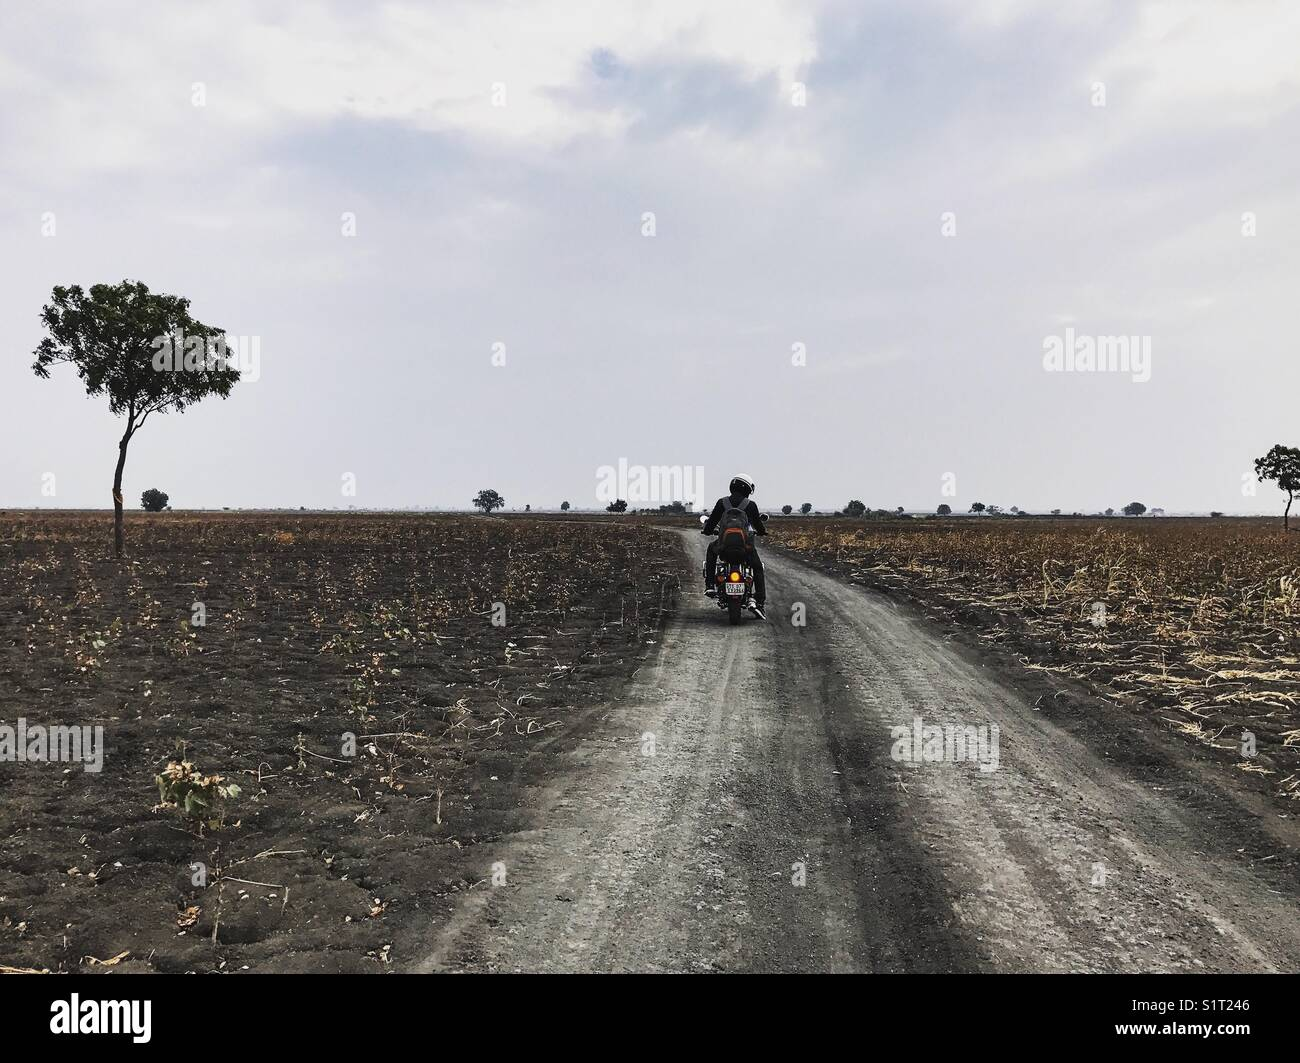 A lone rider !! - Stock Image